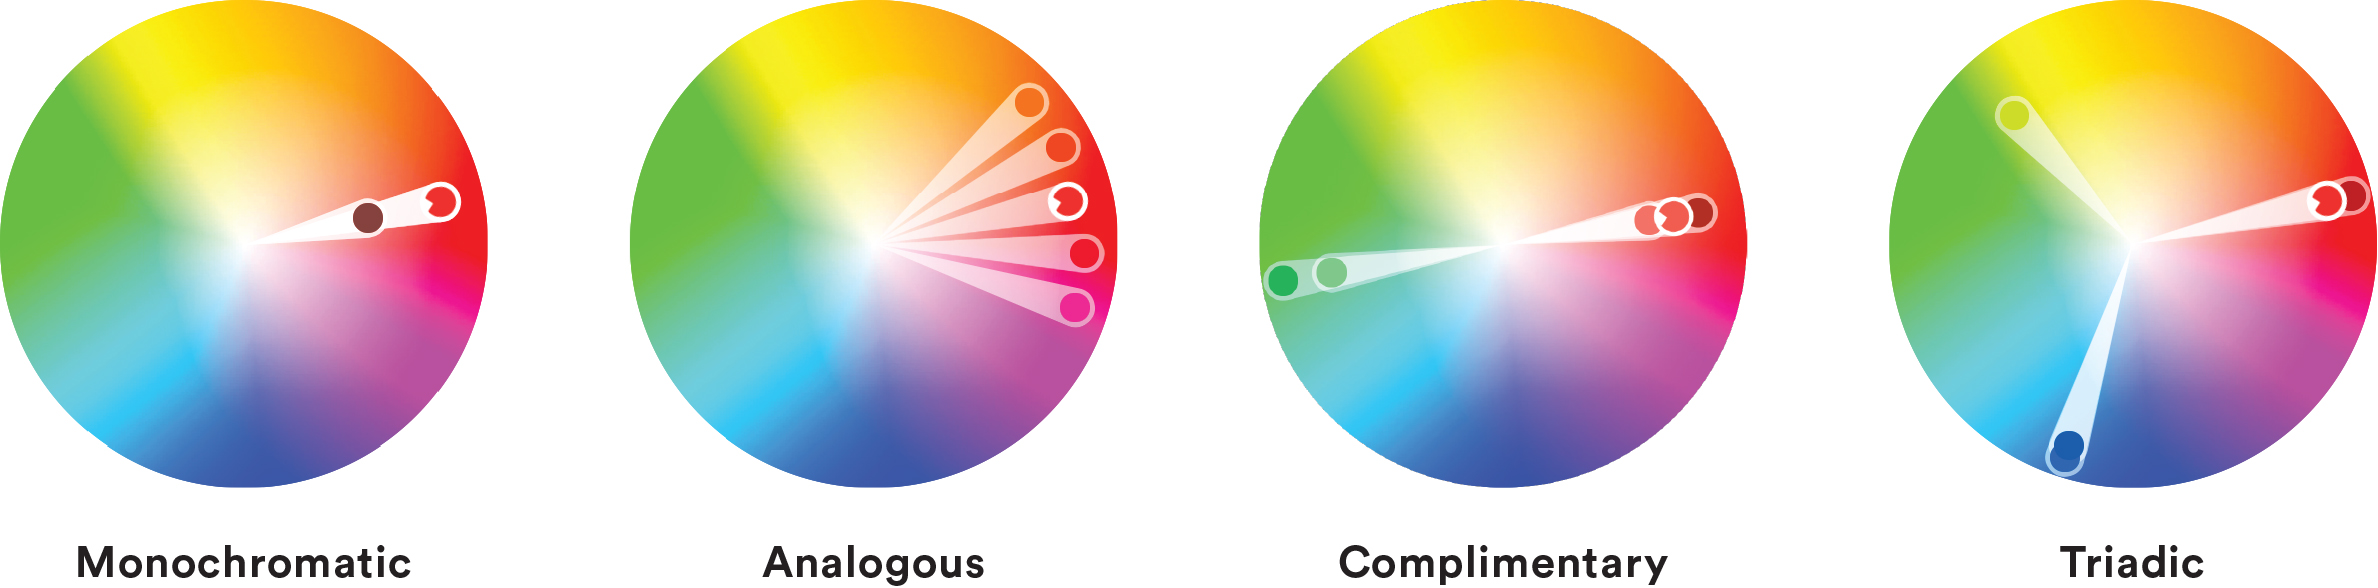 Lets Cover Some Basic Color Theory By Going Over Four Types Monochromatic Analogous Complementary And Triadic When Its Best To